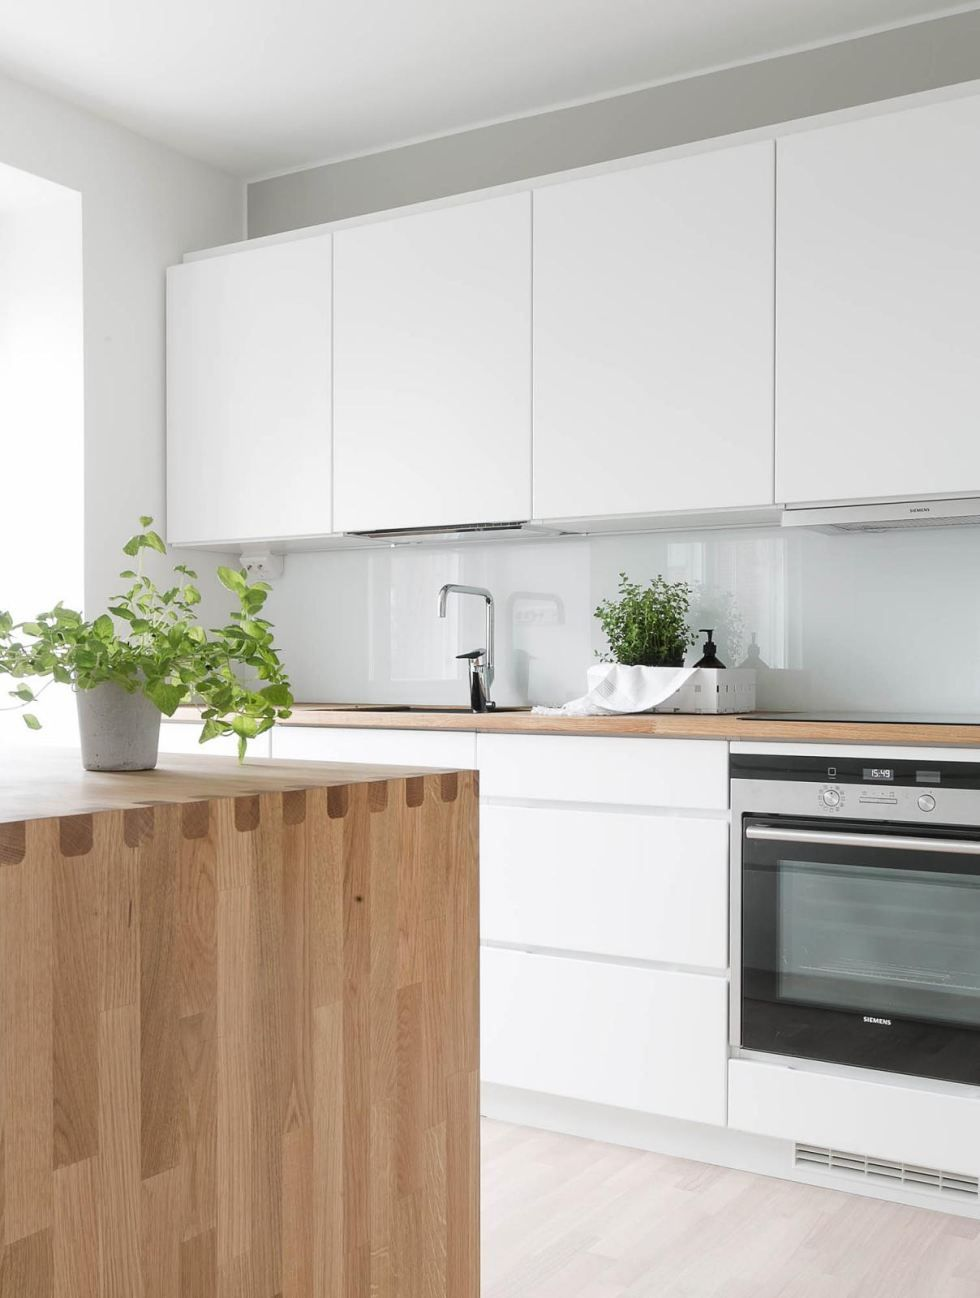 Wooden Benchtop Kitchen Pin By Kailee On Interior In 2019 Scandinavian Kitchen